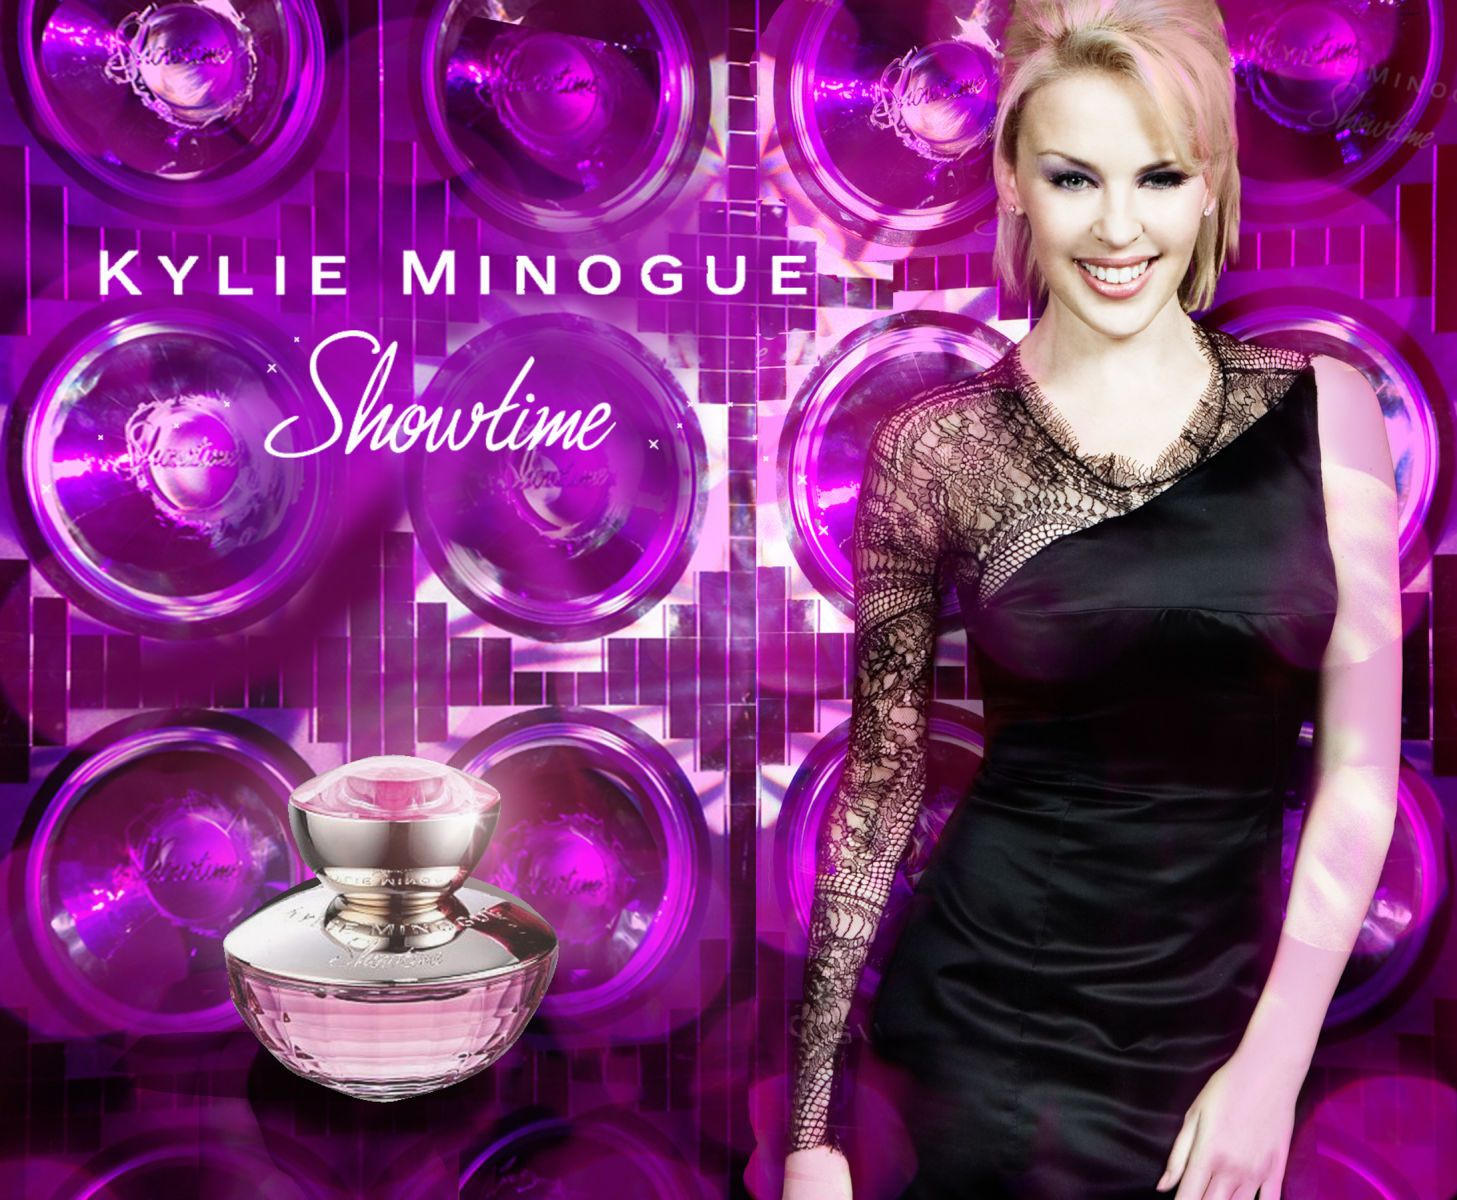 107kylieminogue_01_003056_doublepg_bottle_edit.jpg